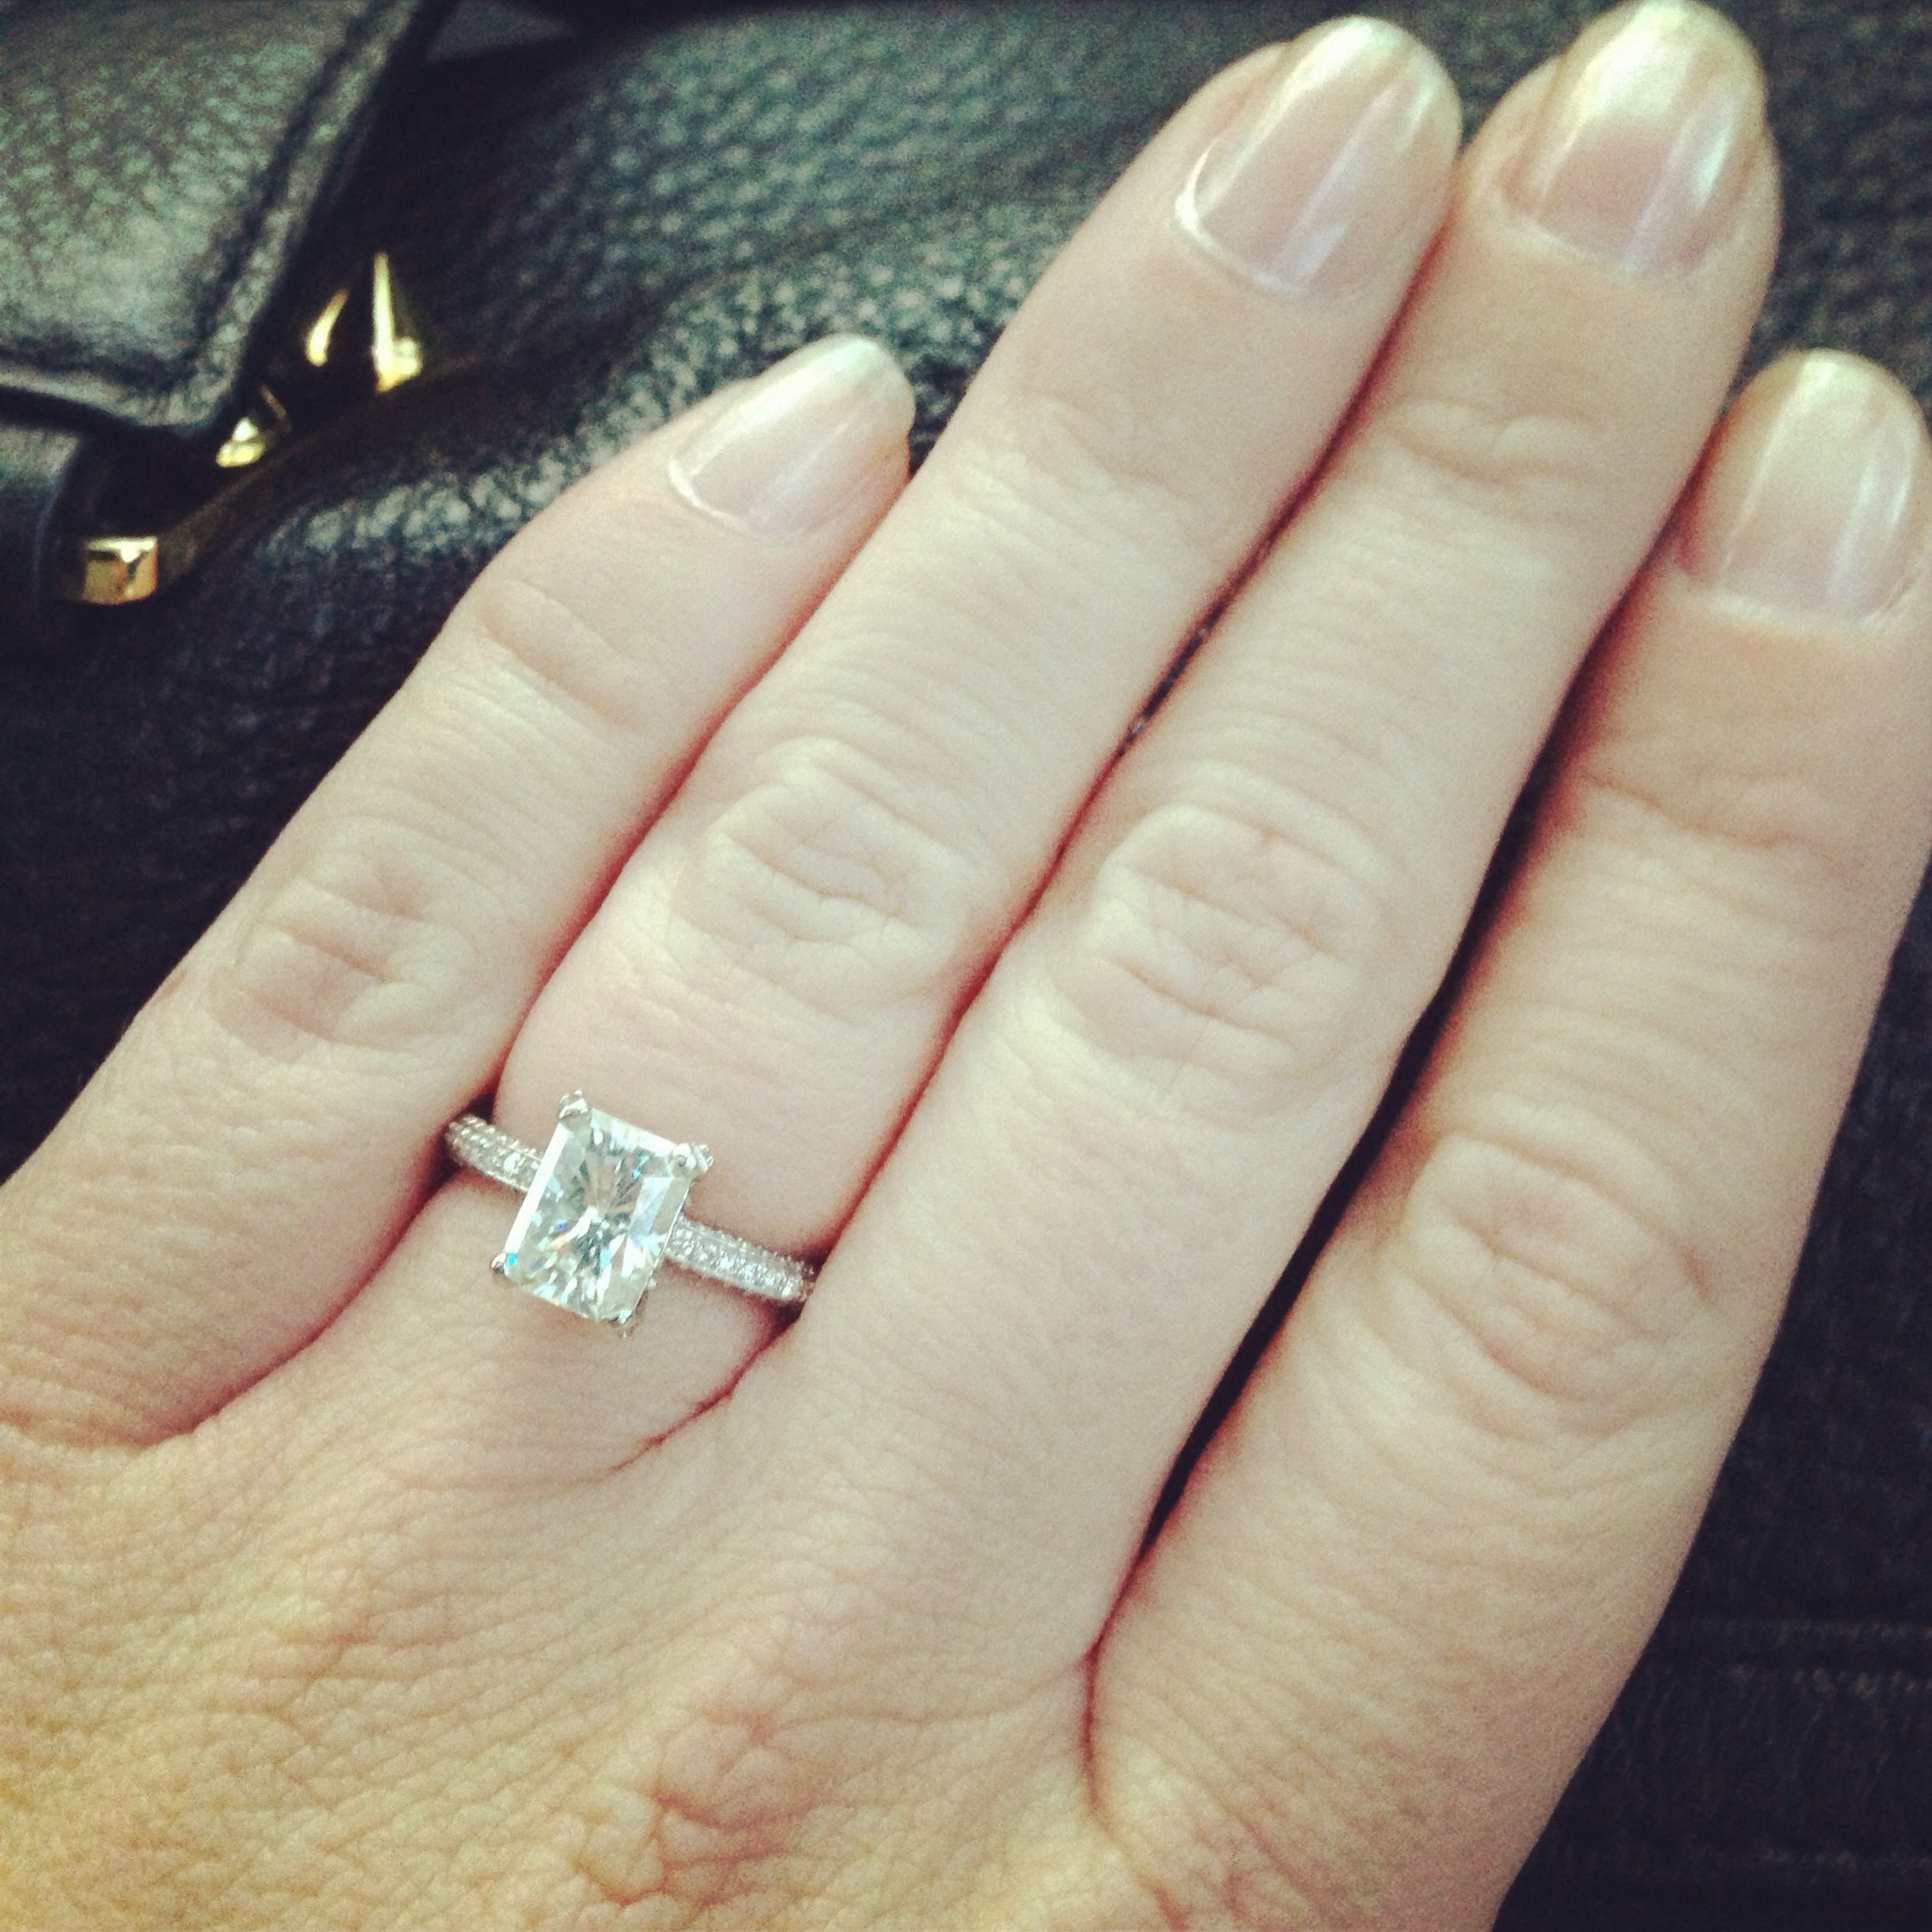 Radiant cut engagement ring #perfection